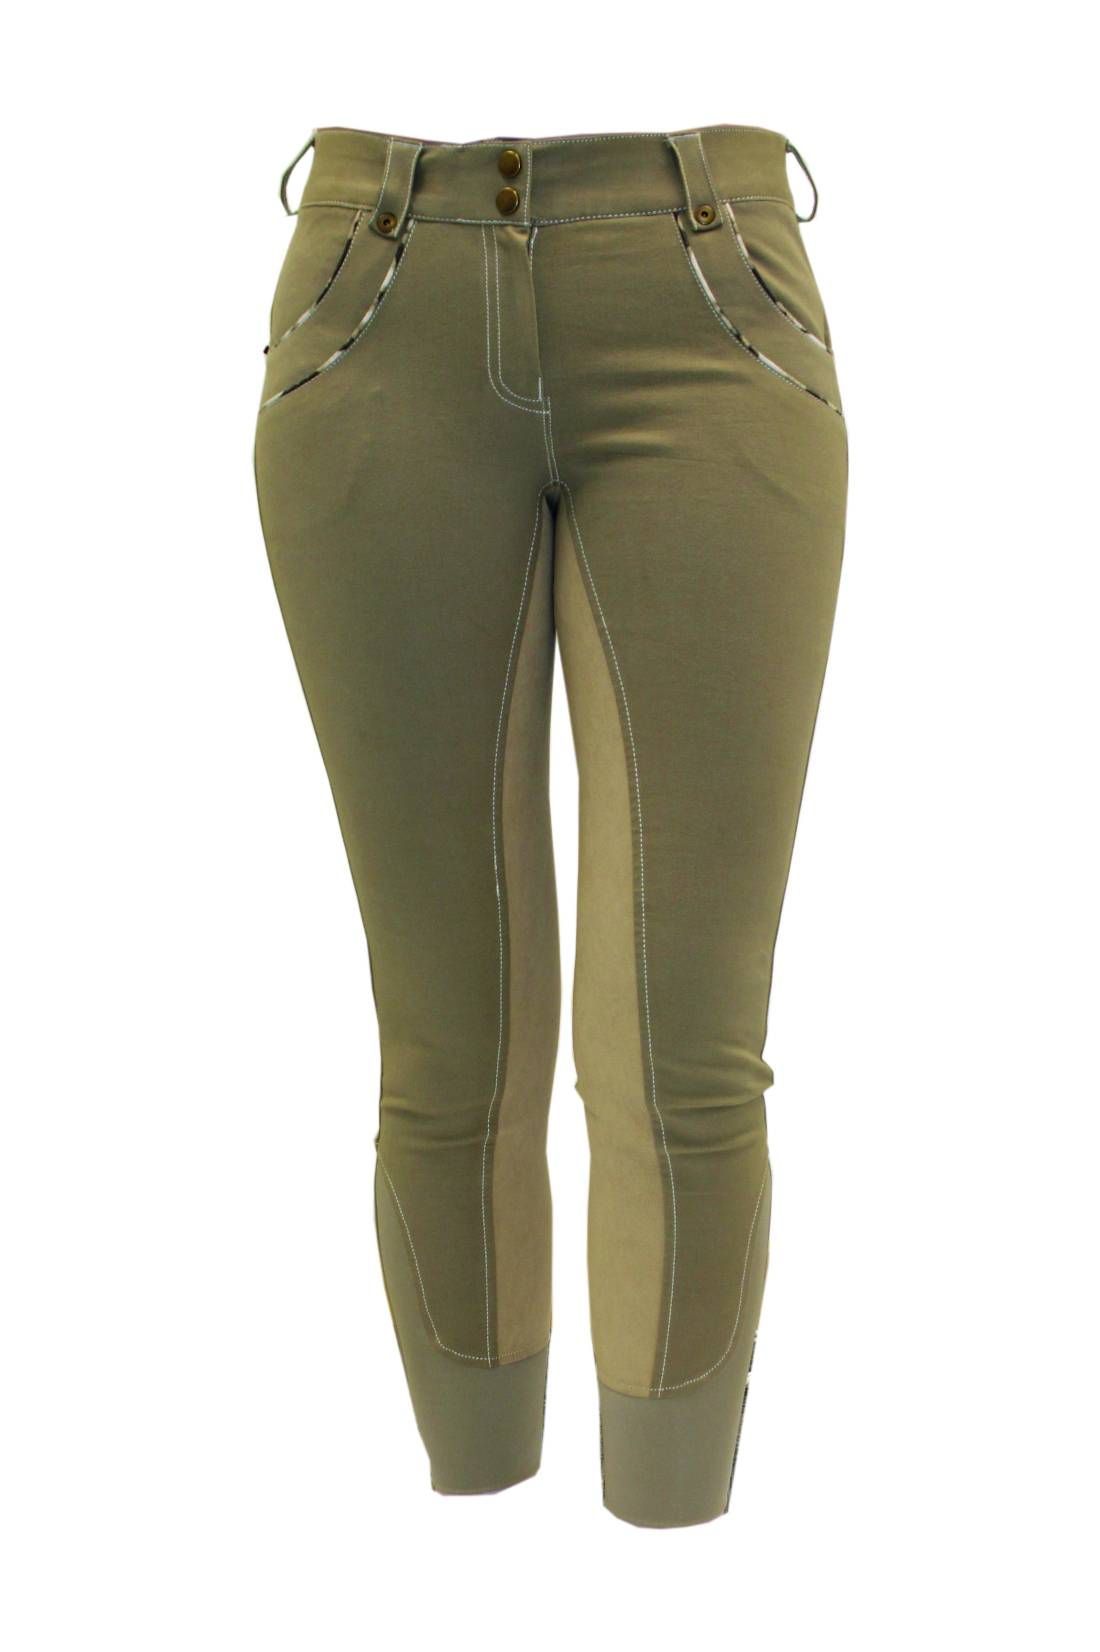 Horseware Polo Nina Breeches - Ladies, Full Seat